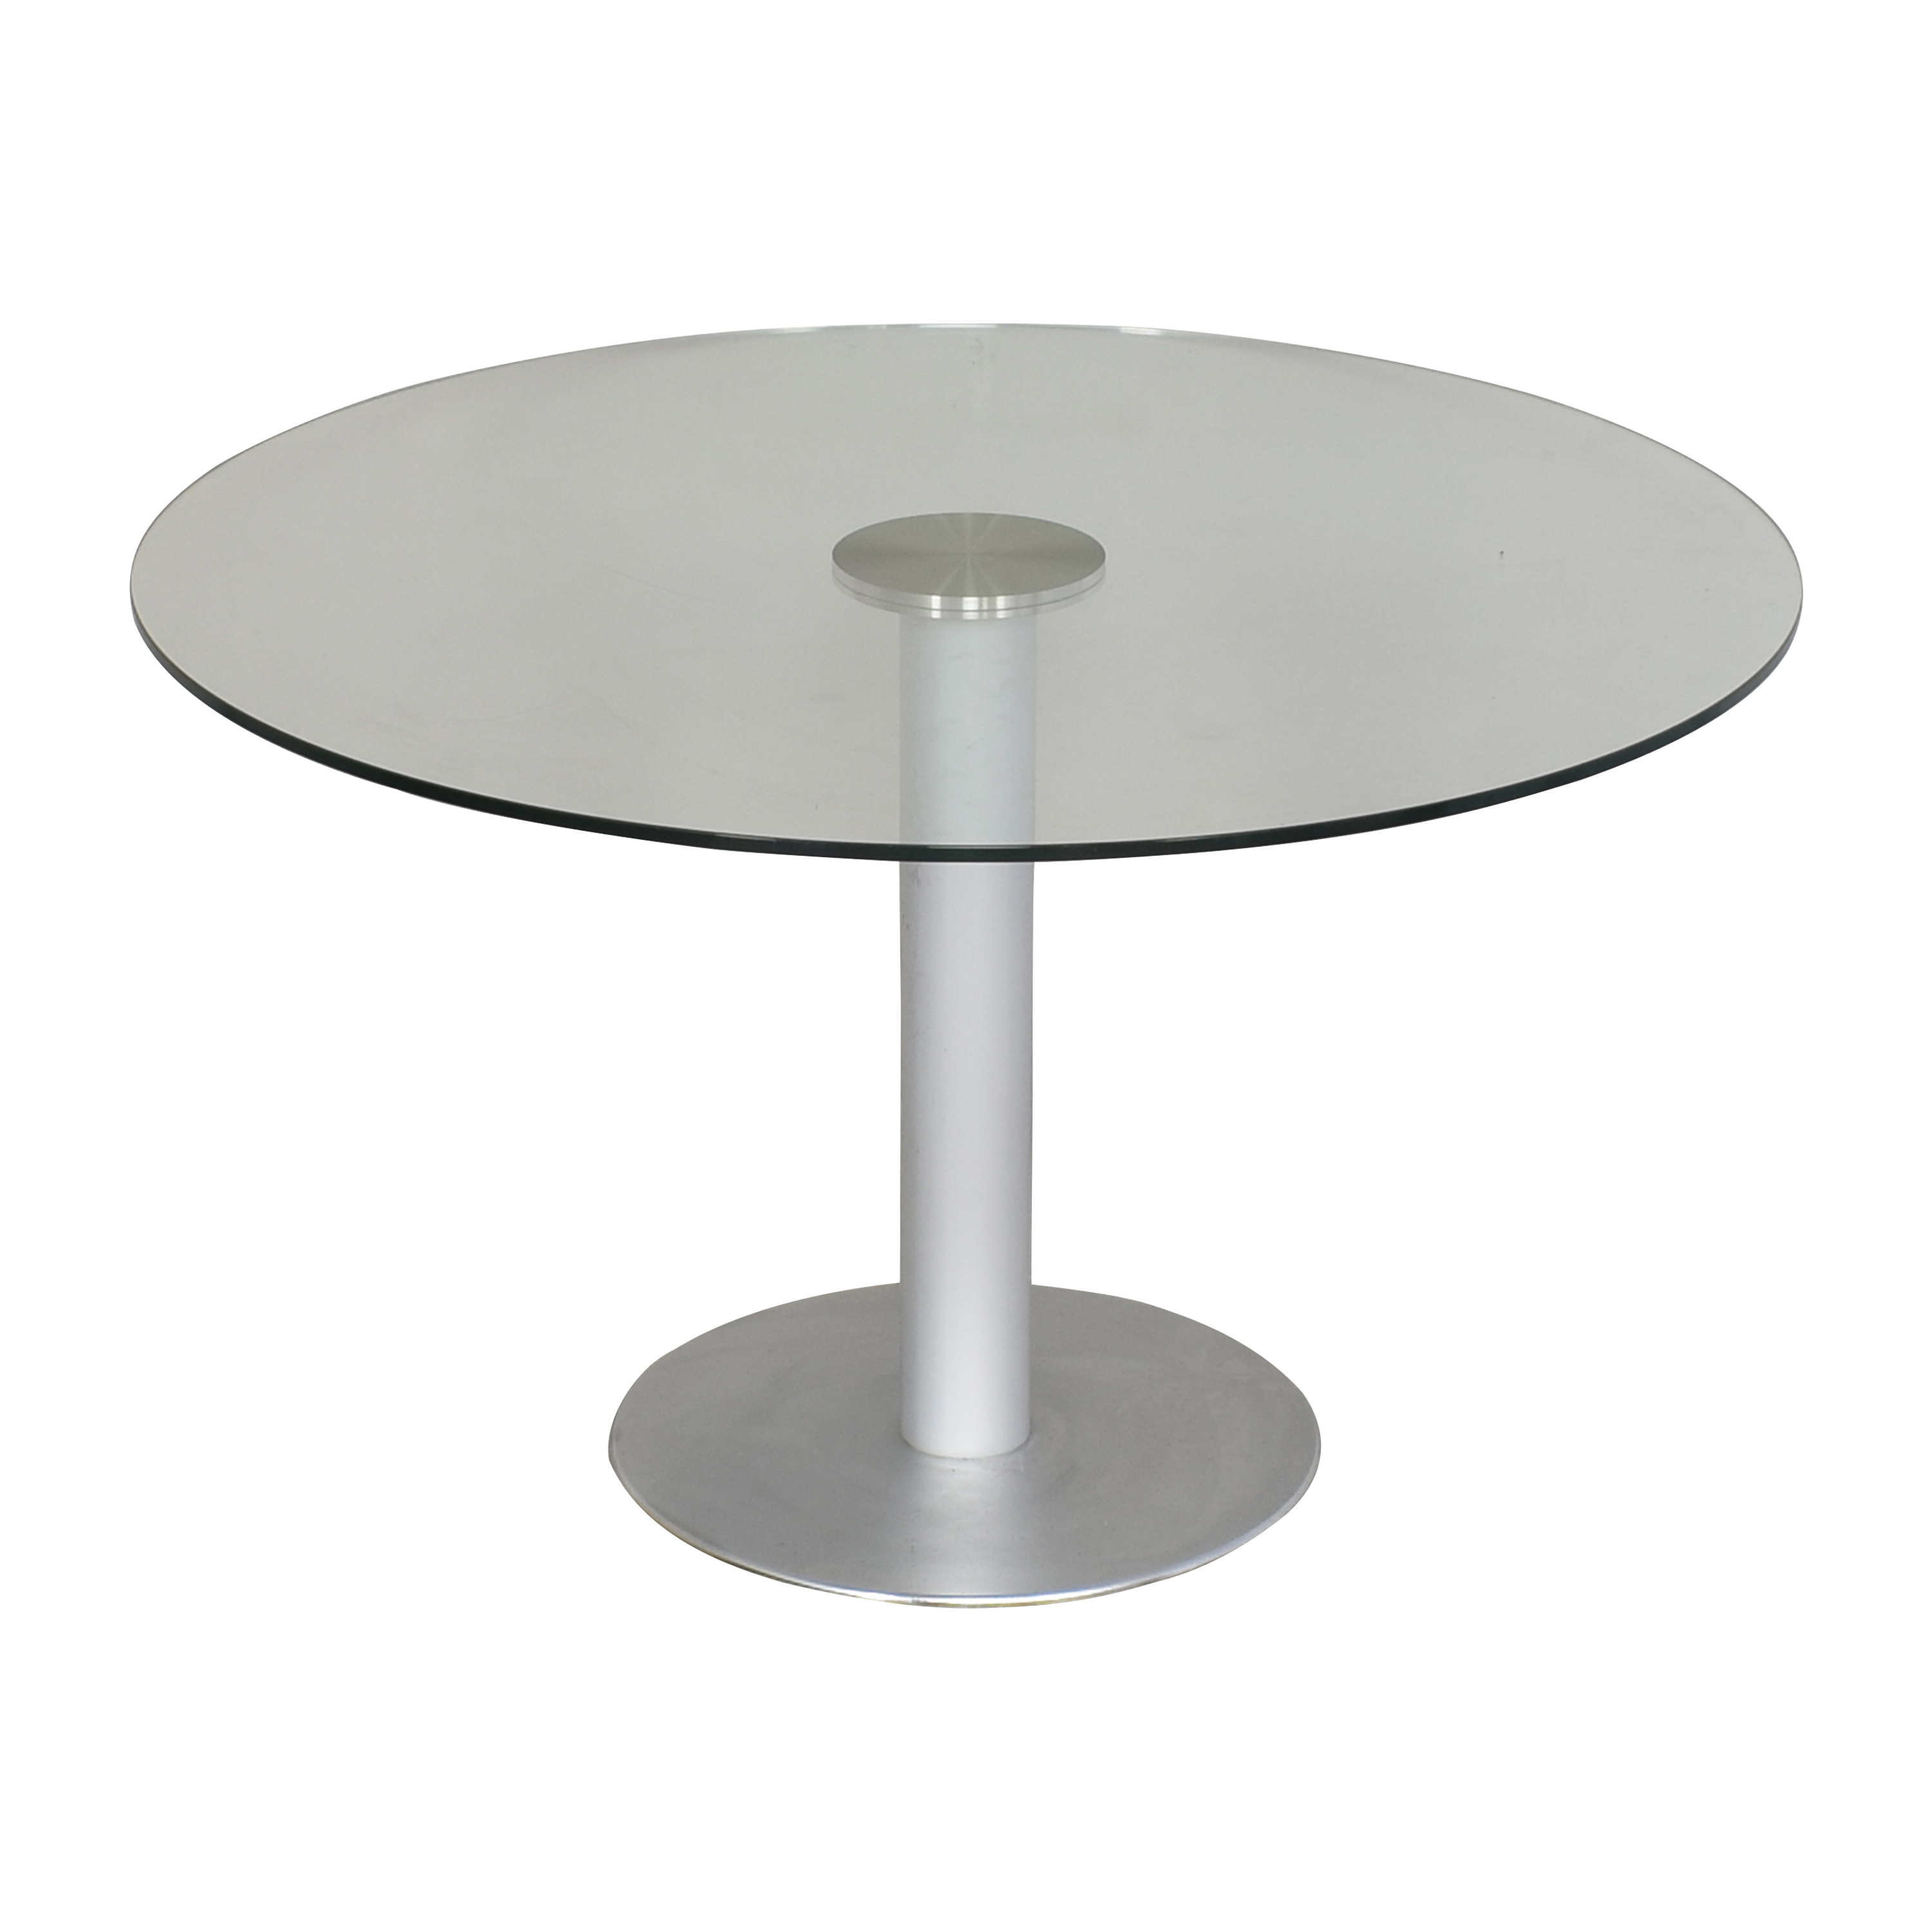 Design Within Reach Zero Table / Dinner Tables